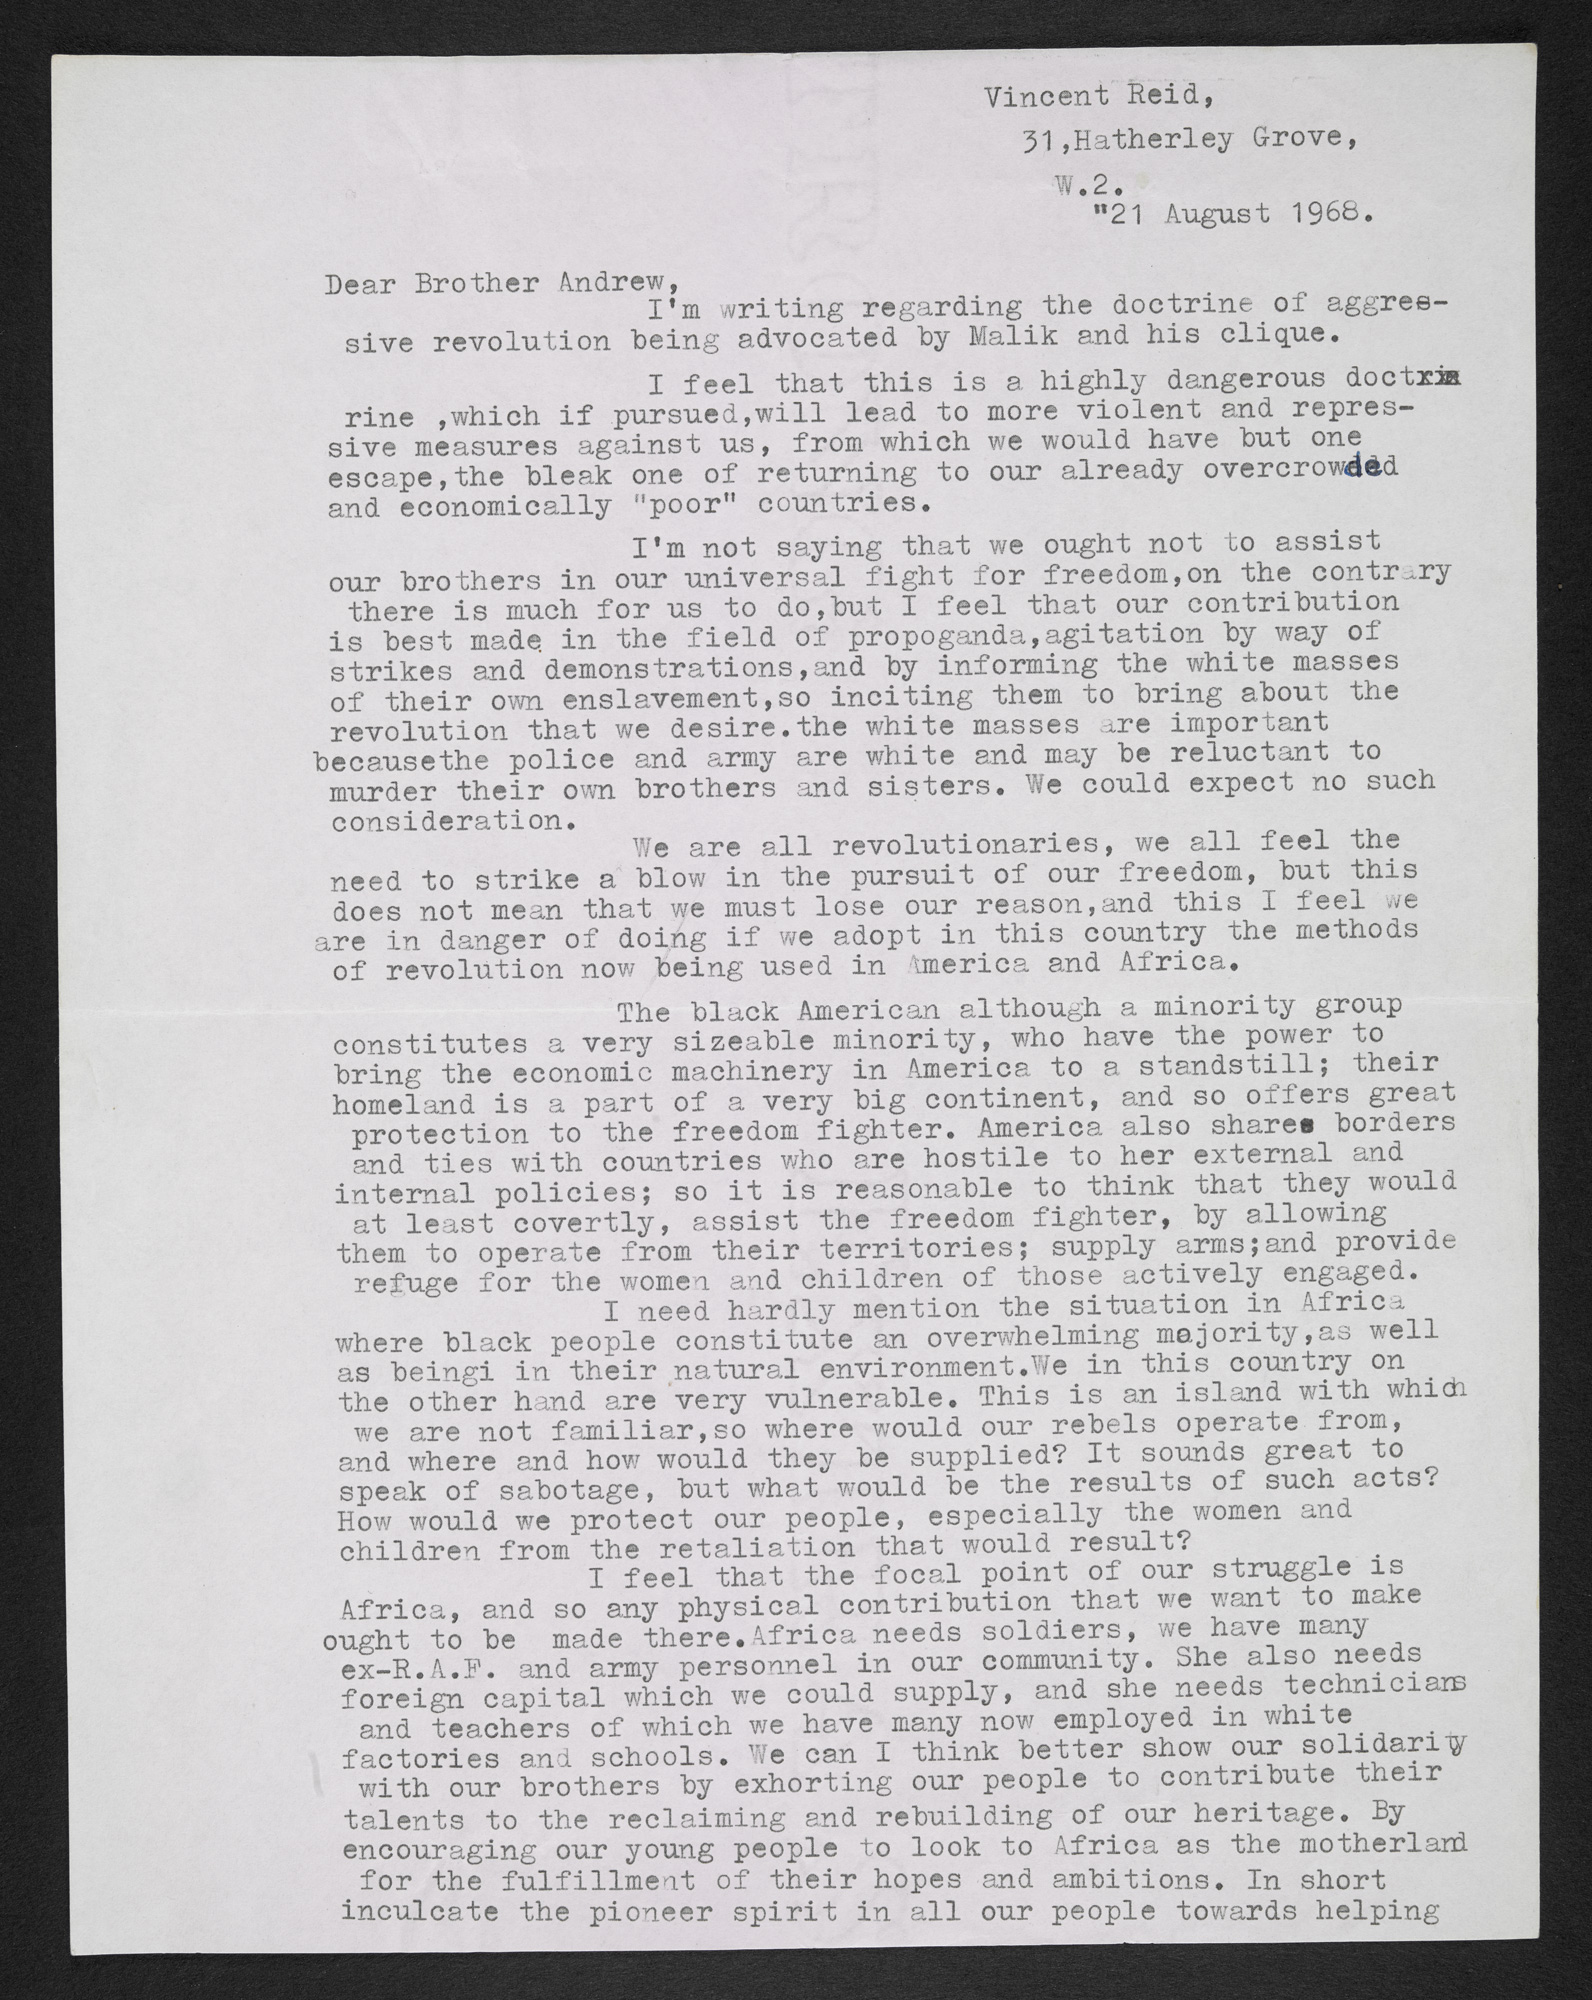 Typewritten letter from Vincent Reid to Andrew Salkey dated 21 August 1968